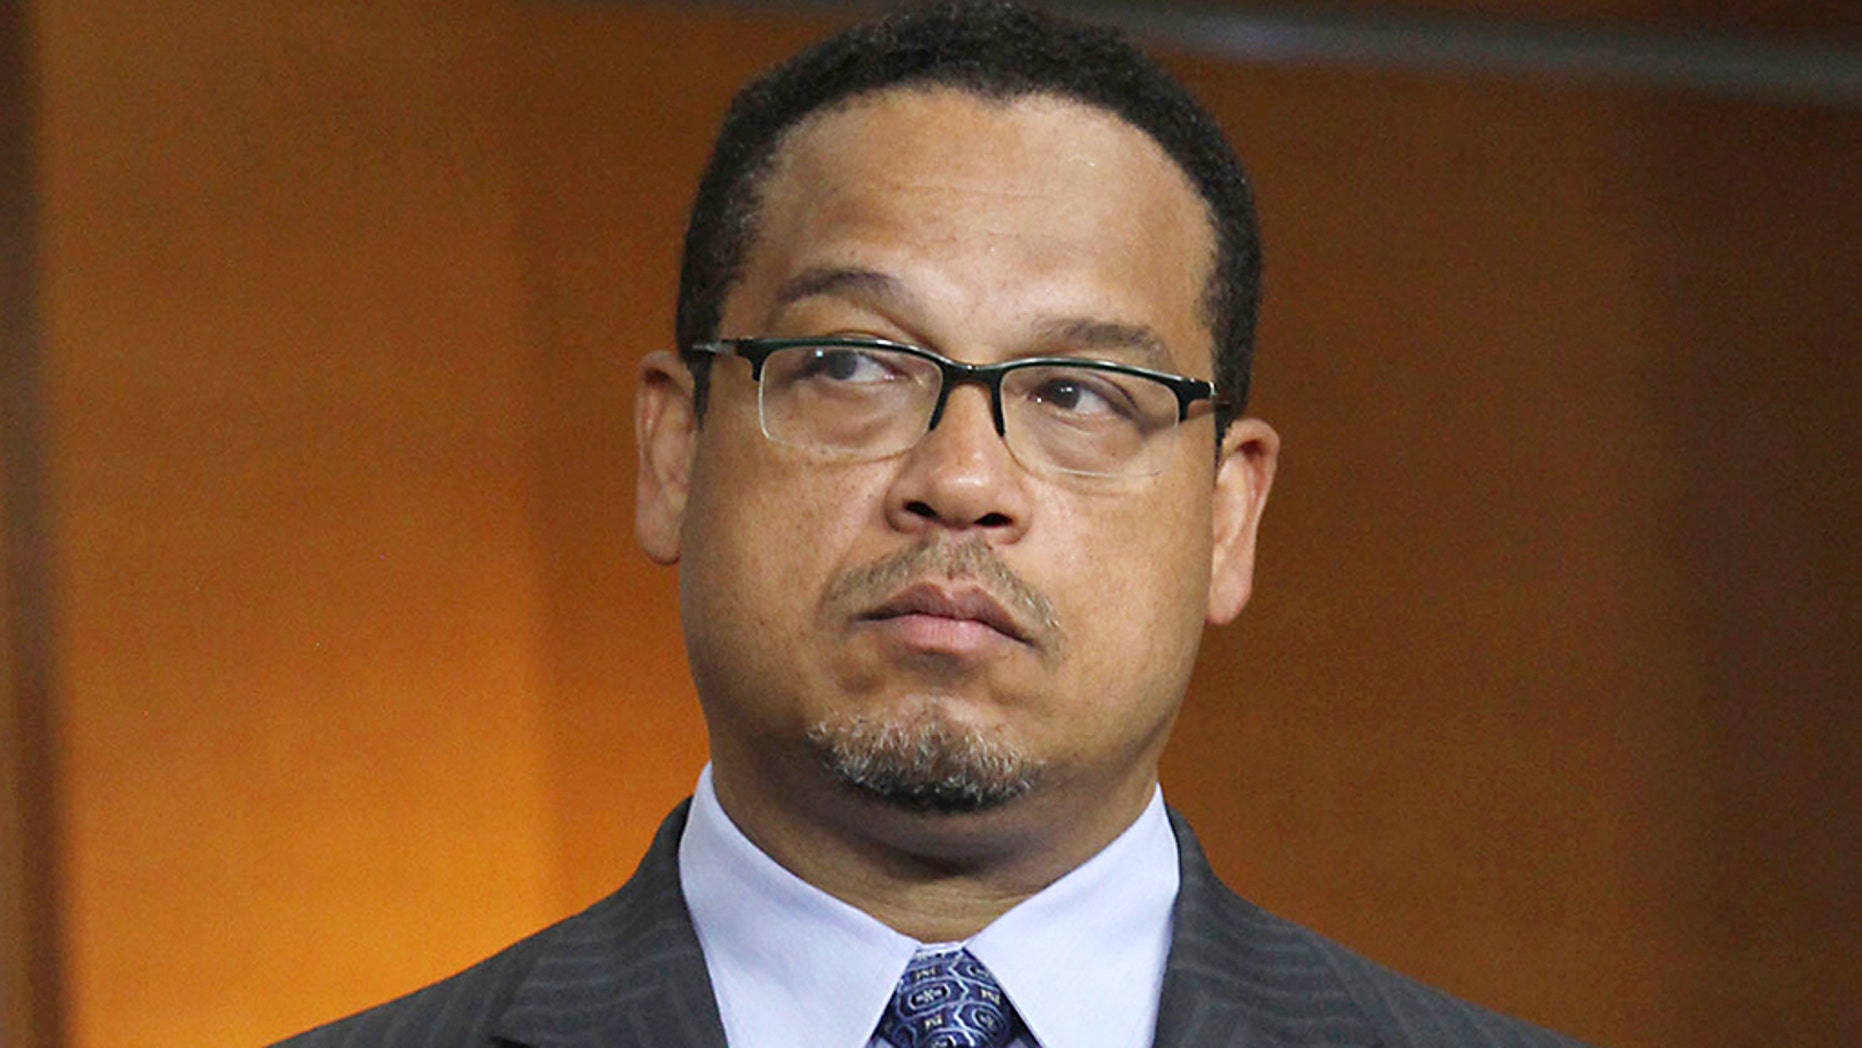 Democratic Rep. Keith Ellison scored a victory Tuesday night in the Minnesota primary race for the state's attorney general days after domestic abuse accusations against him surfaced.